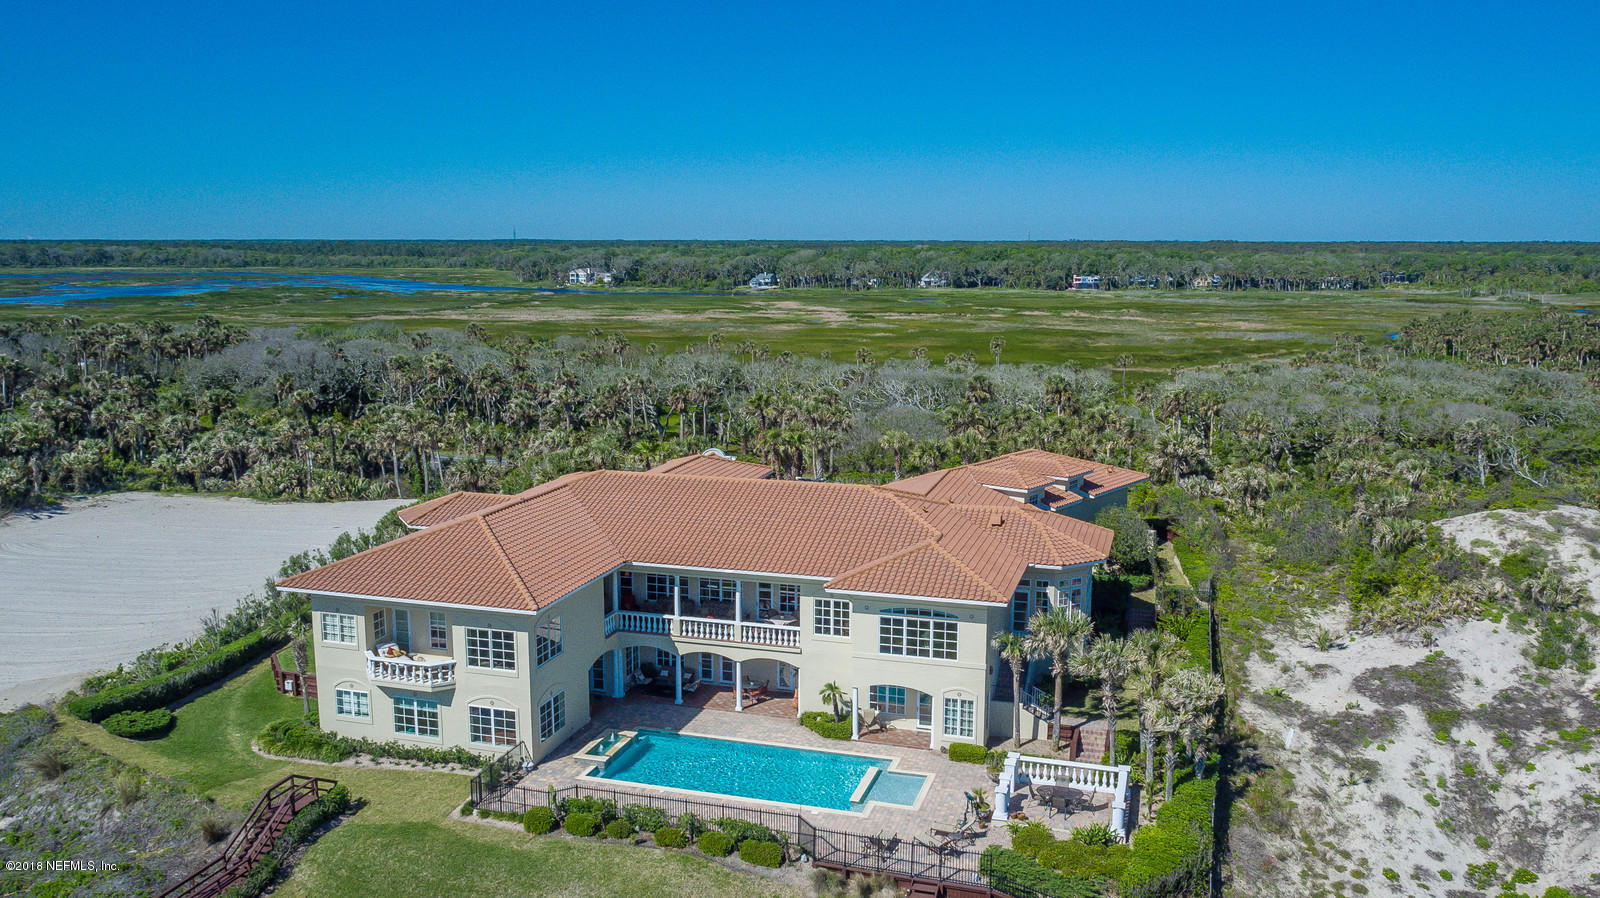 1155 PONTE VEDRA, PONTE VEDRA BEACH, FLORIDA 32082, 5 Bedrooms Bedrooms, ,6 BathroomsBathrooms,Residential,For sale,PONTE VEDRA,933104